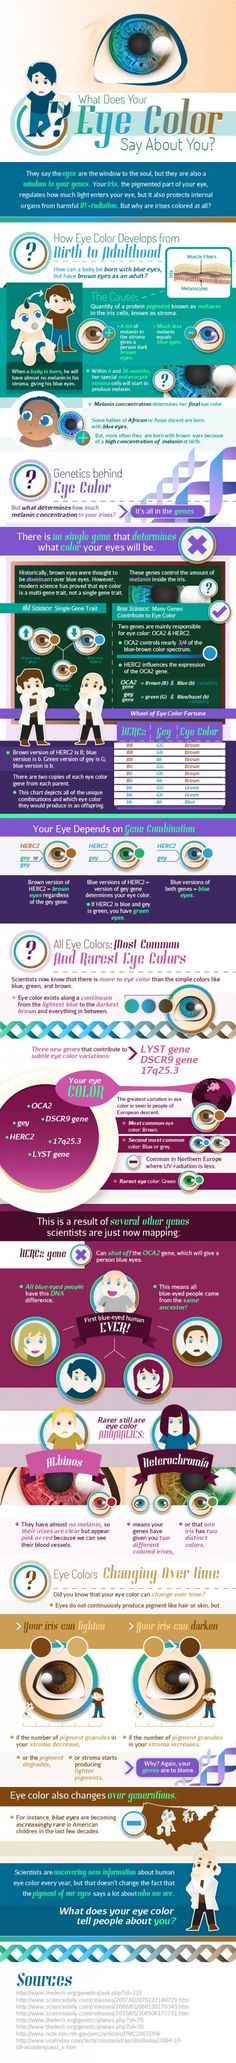 An interesting look at the science and development of eye color.